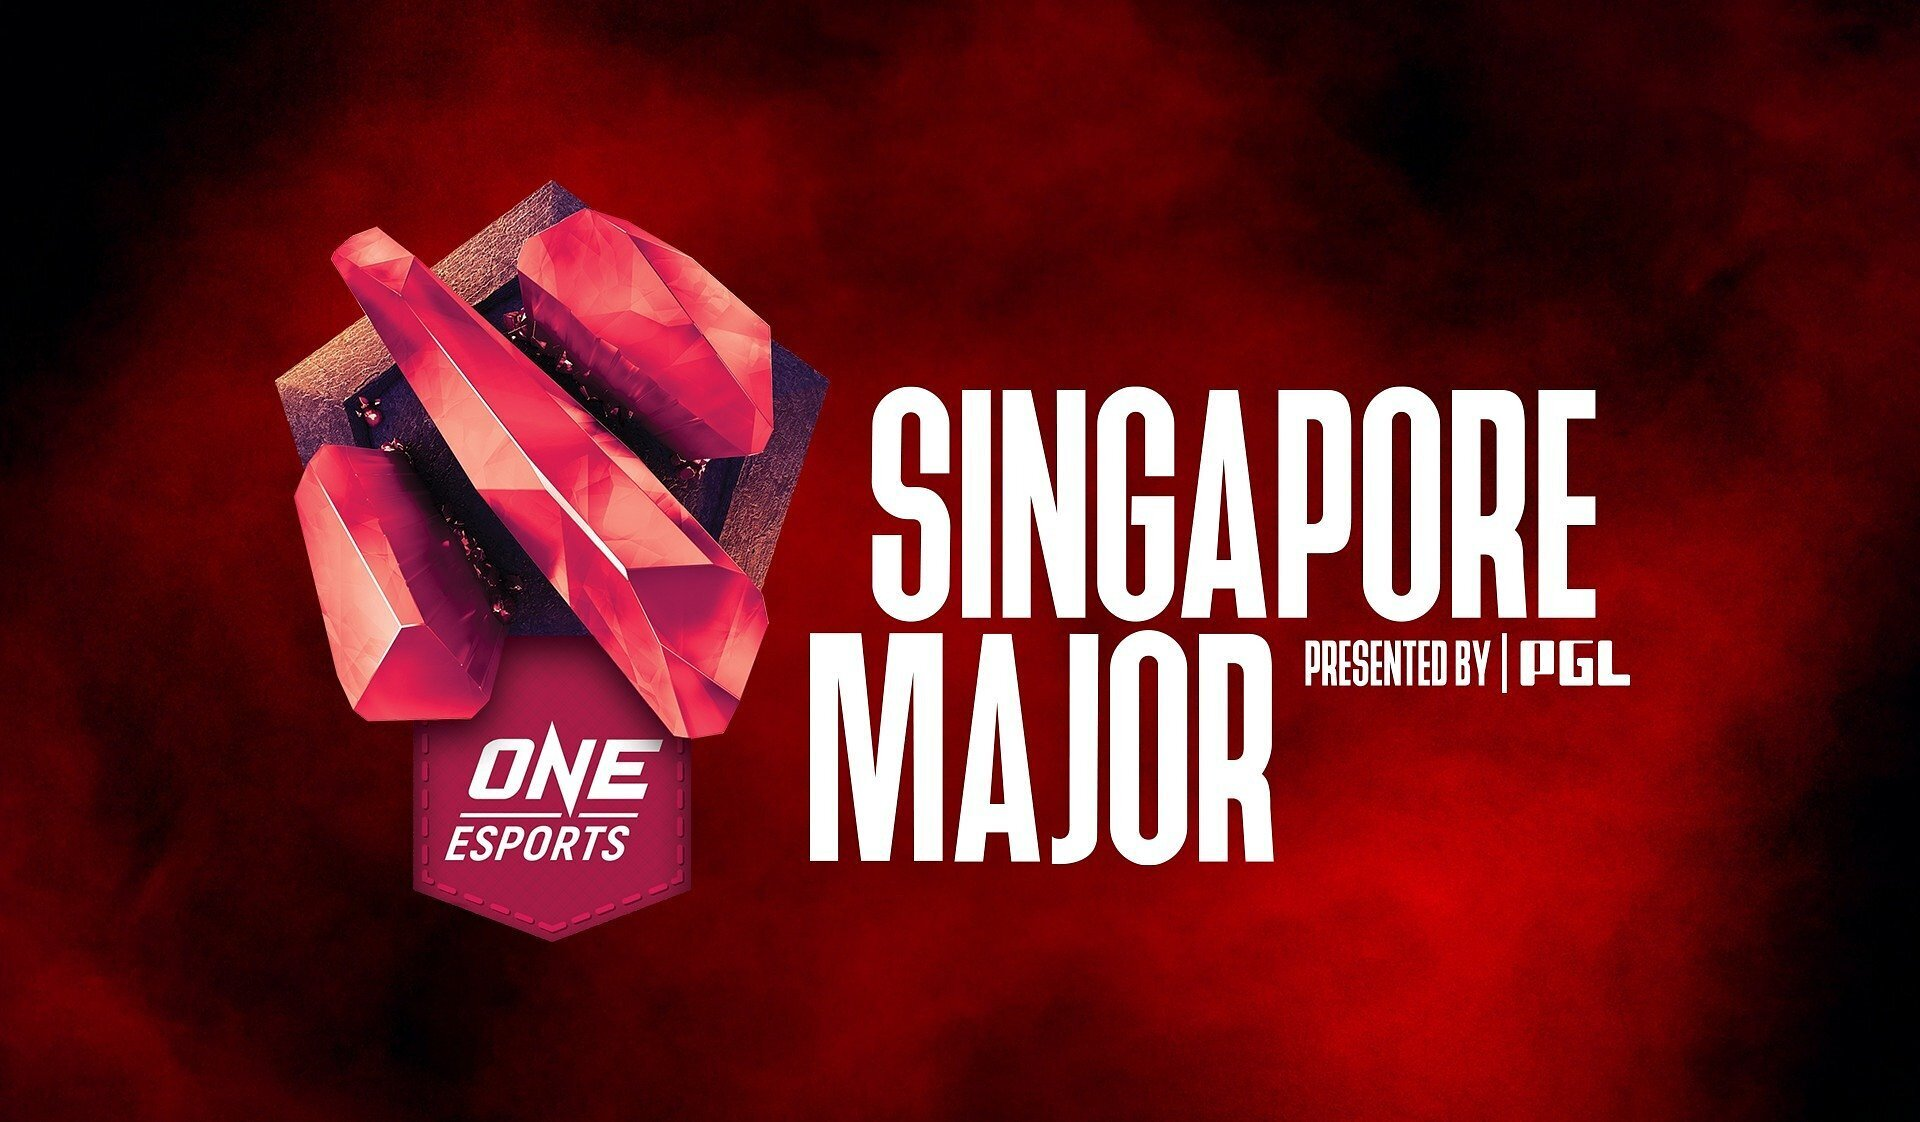 Every Team That Qualified for the Singapore Major 2021